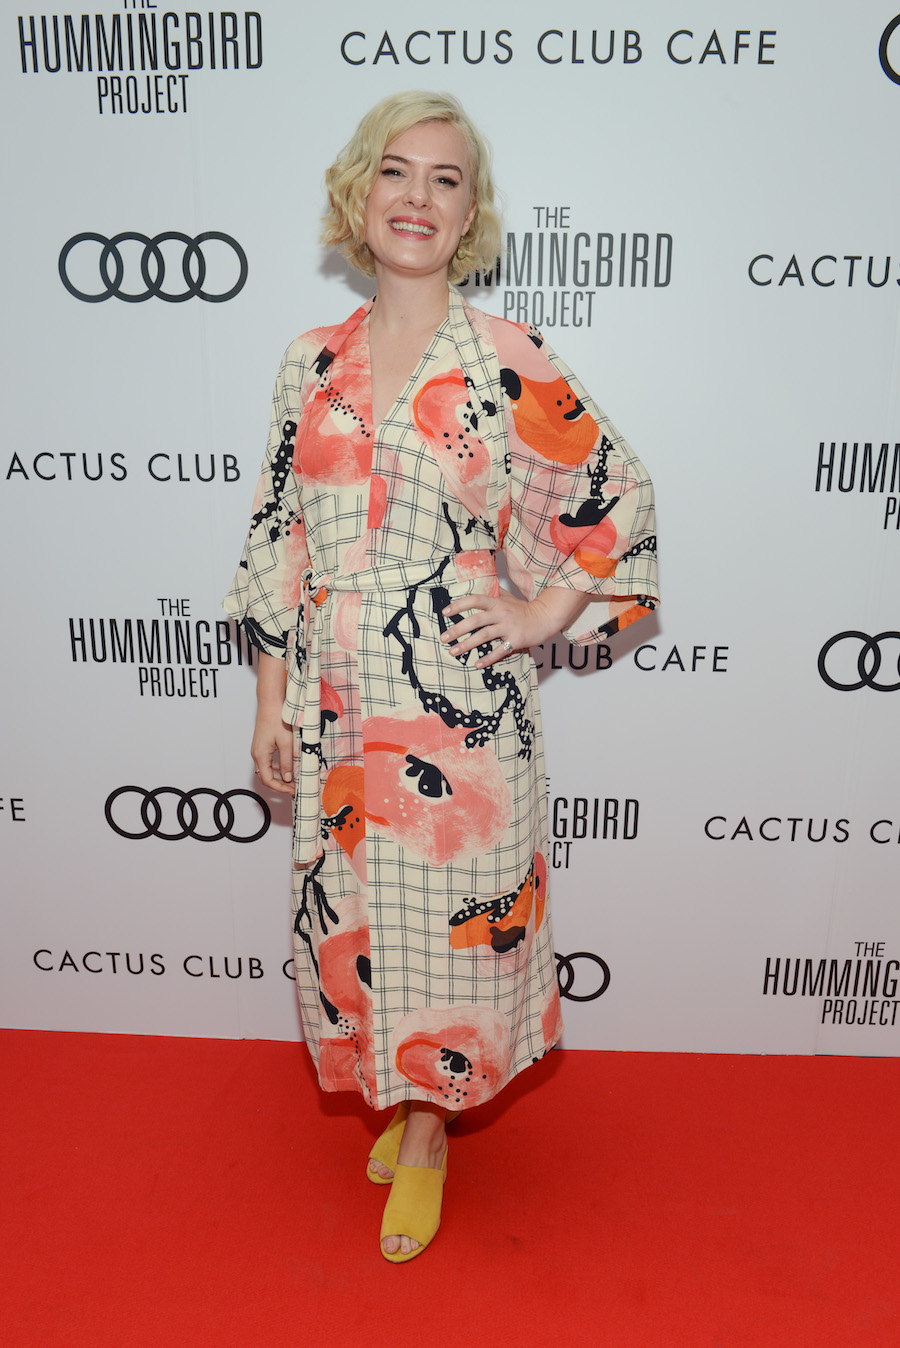 Anna Maguire at 'The Hummingbird Project' premiere party hosted by Cactus Club Cafe at First Canadian Place. (Photo: George Pimentel/Getty Images for Cactus Club Cafe) | View the VIBE